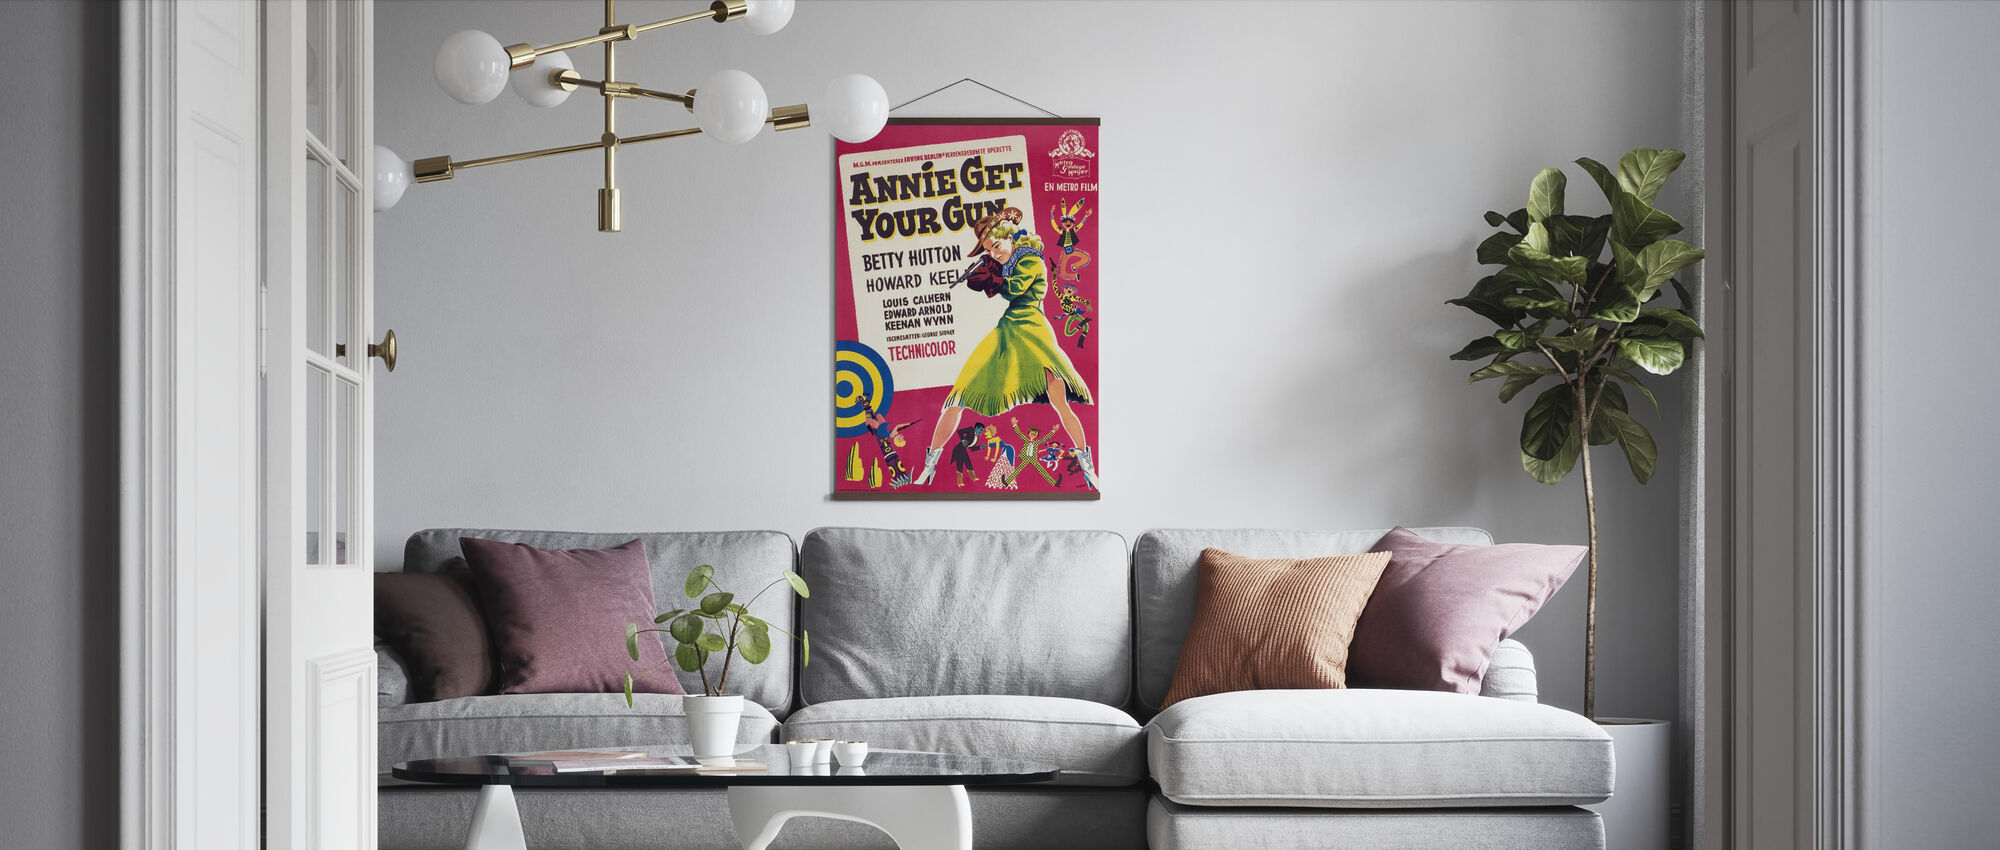 Annie Get Your Gun II - Poster - Living Room